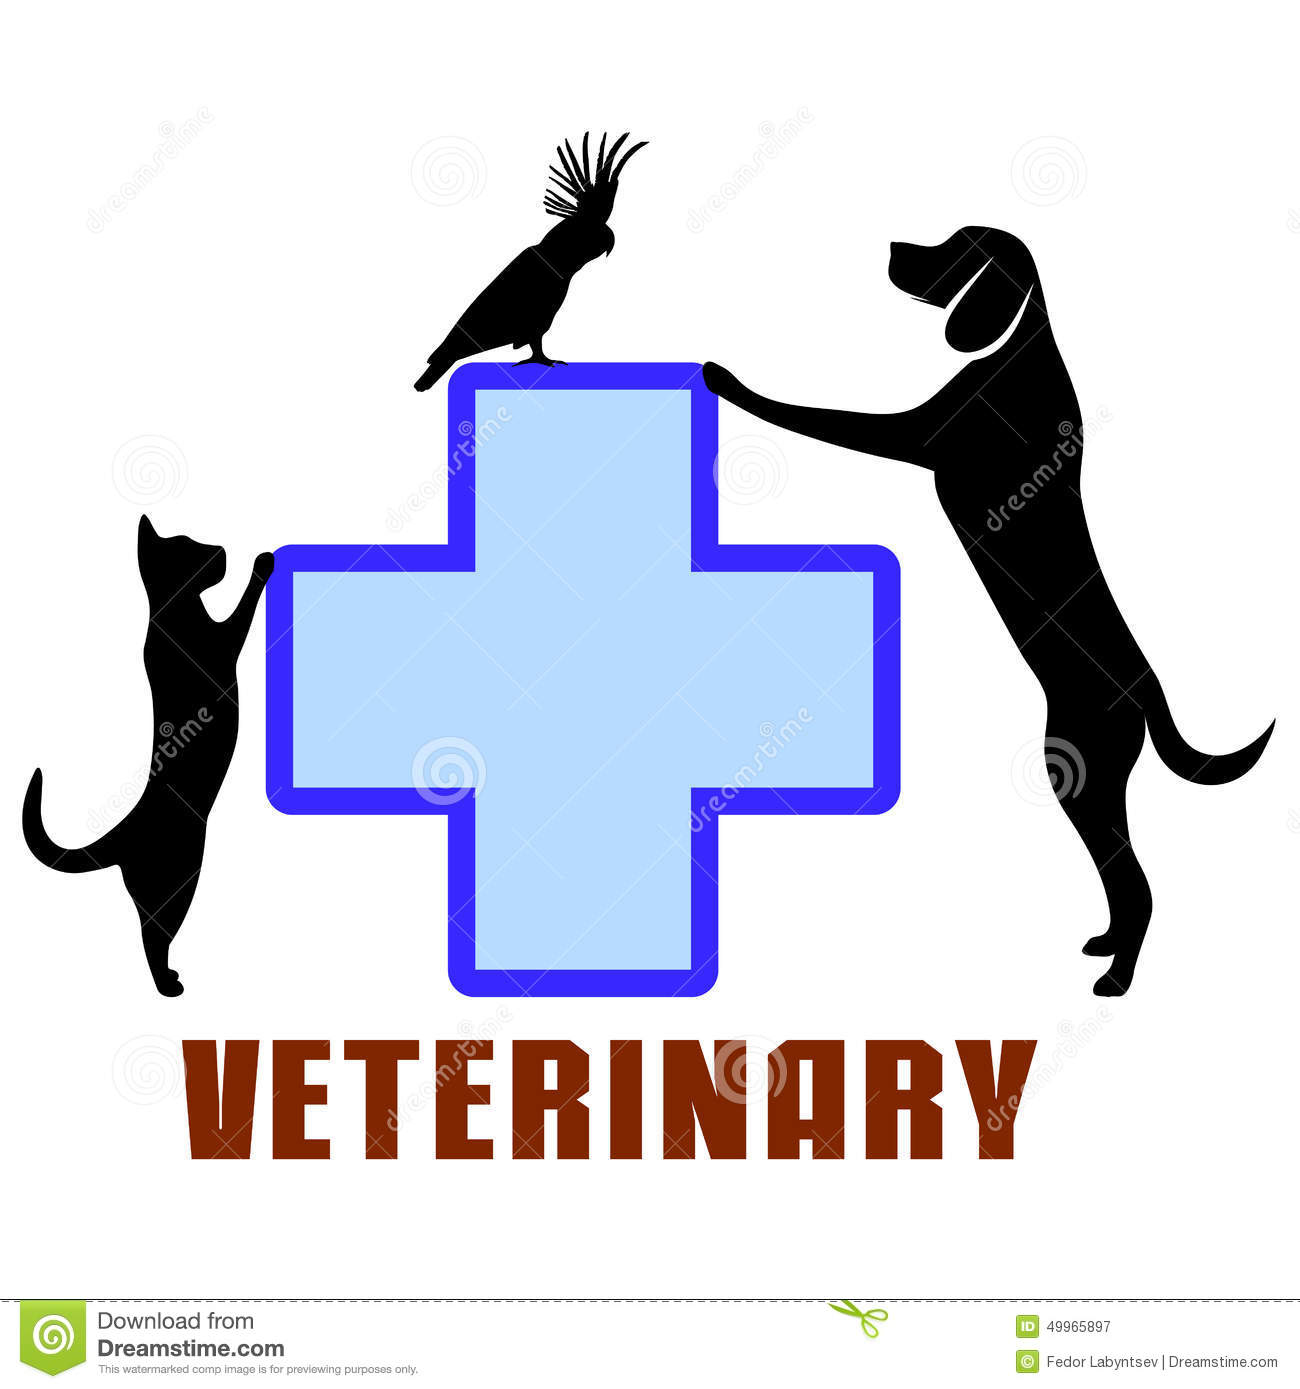 veterinary medicine Find great customer service and low prices on medical and veterinary supplies at med-vet international we have been an online retailer since 1984 and with over 34.